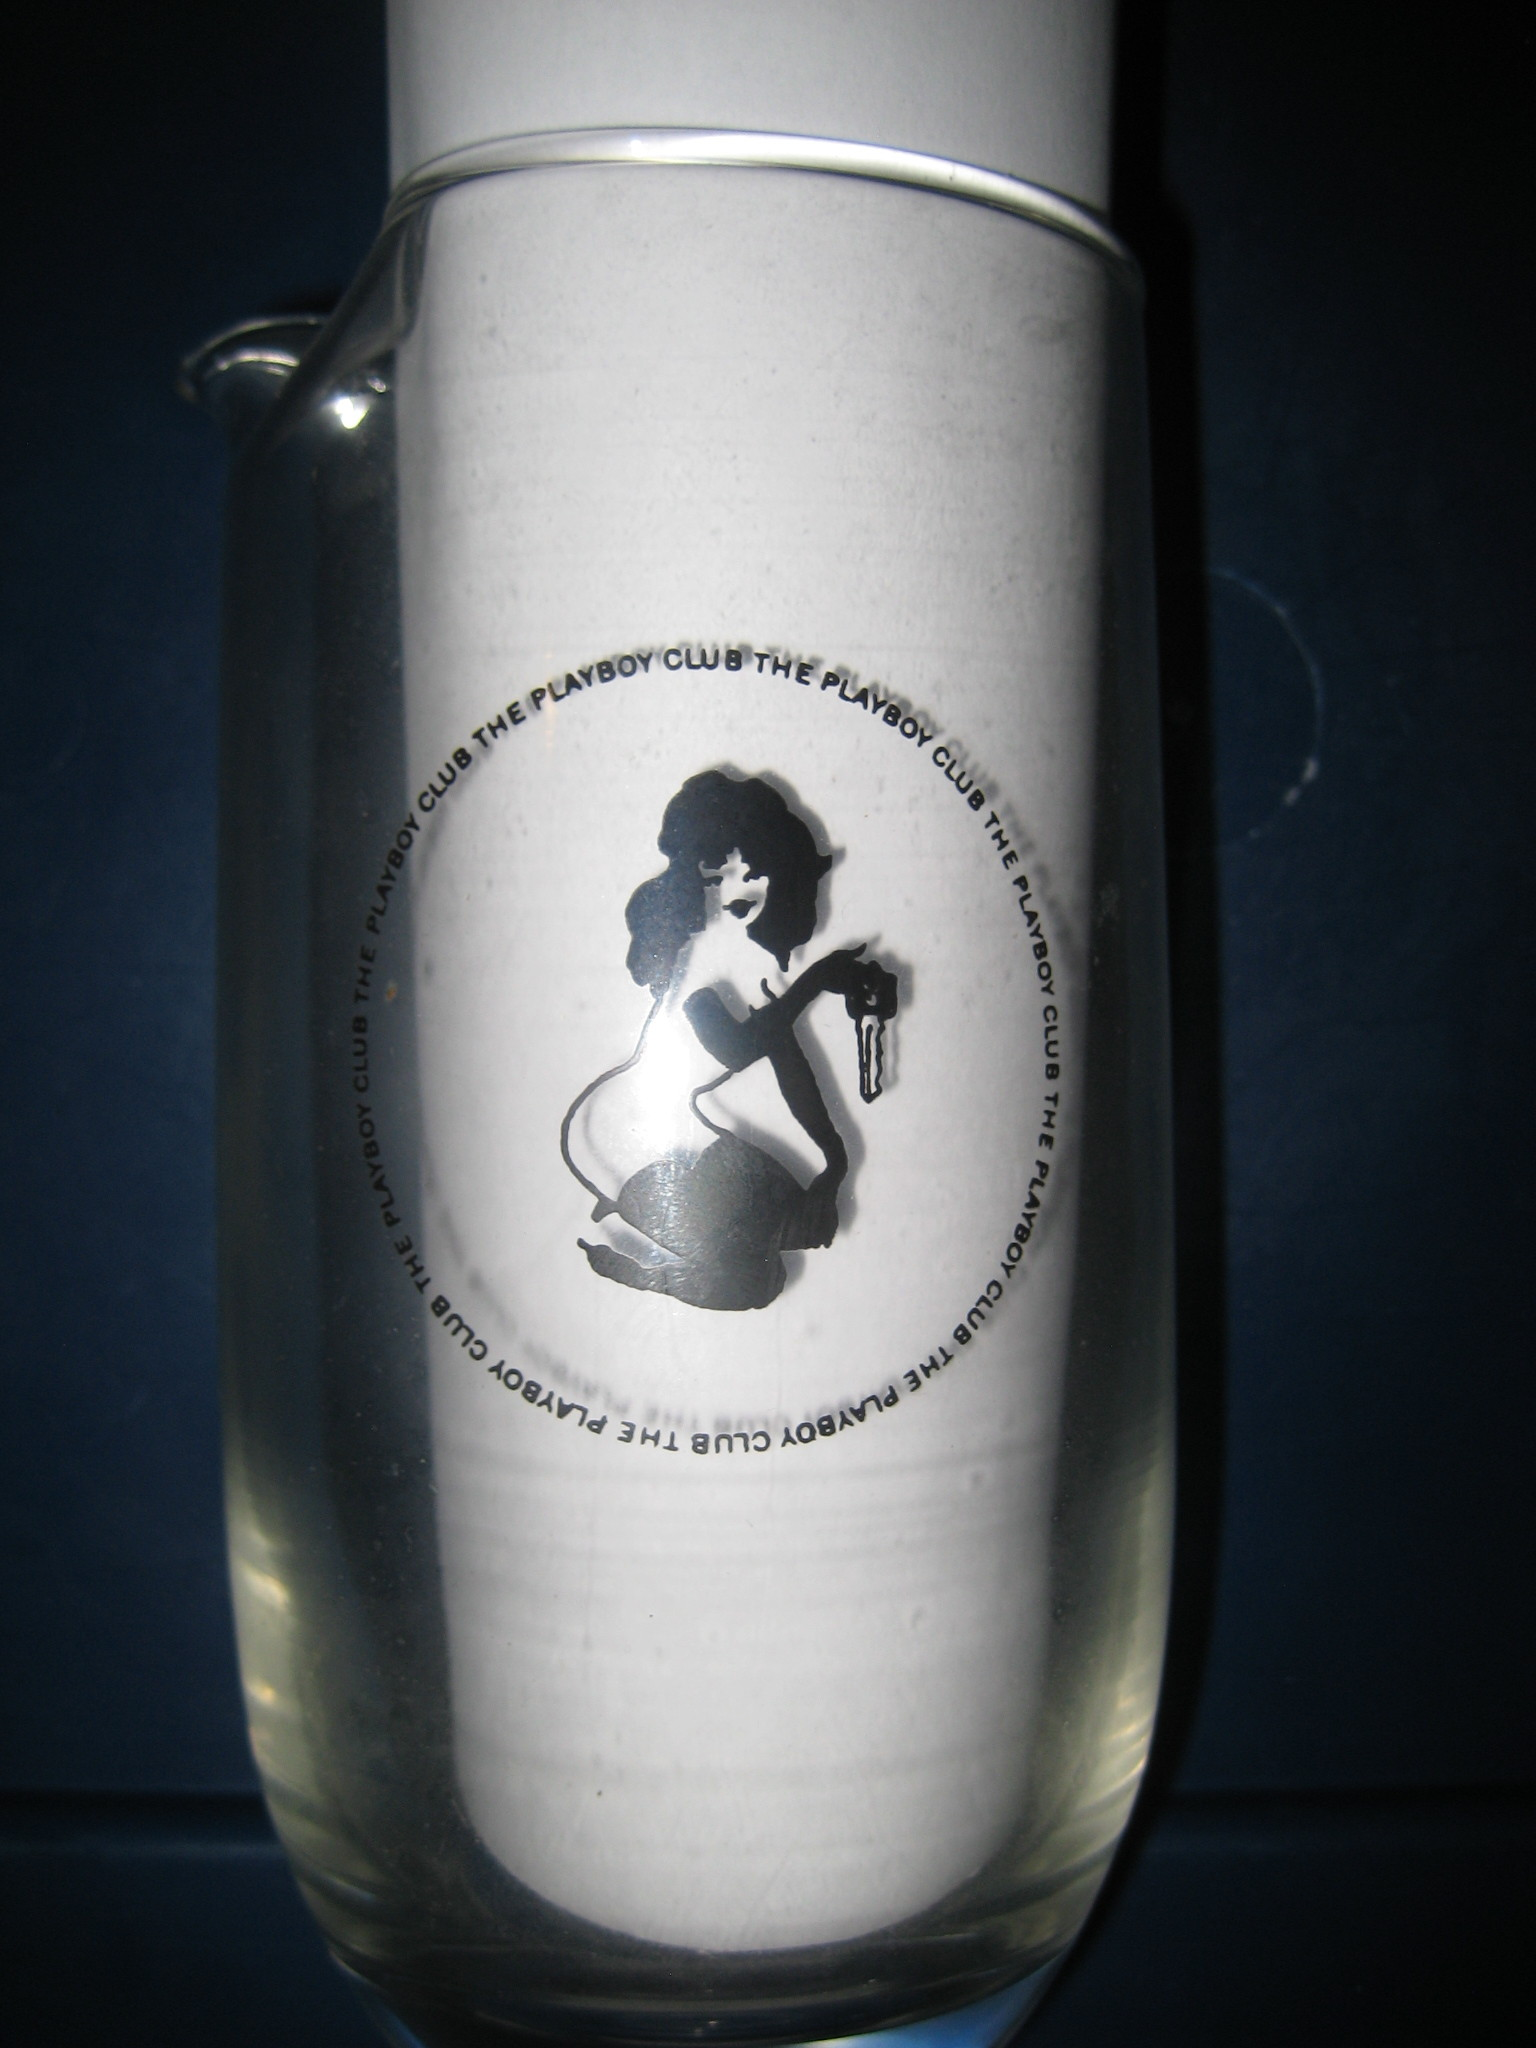 Playboy Club Martini Pitcher